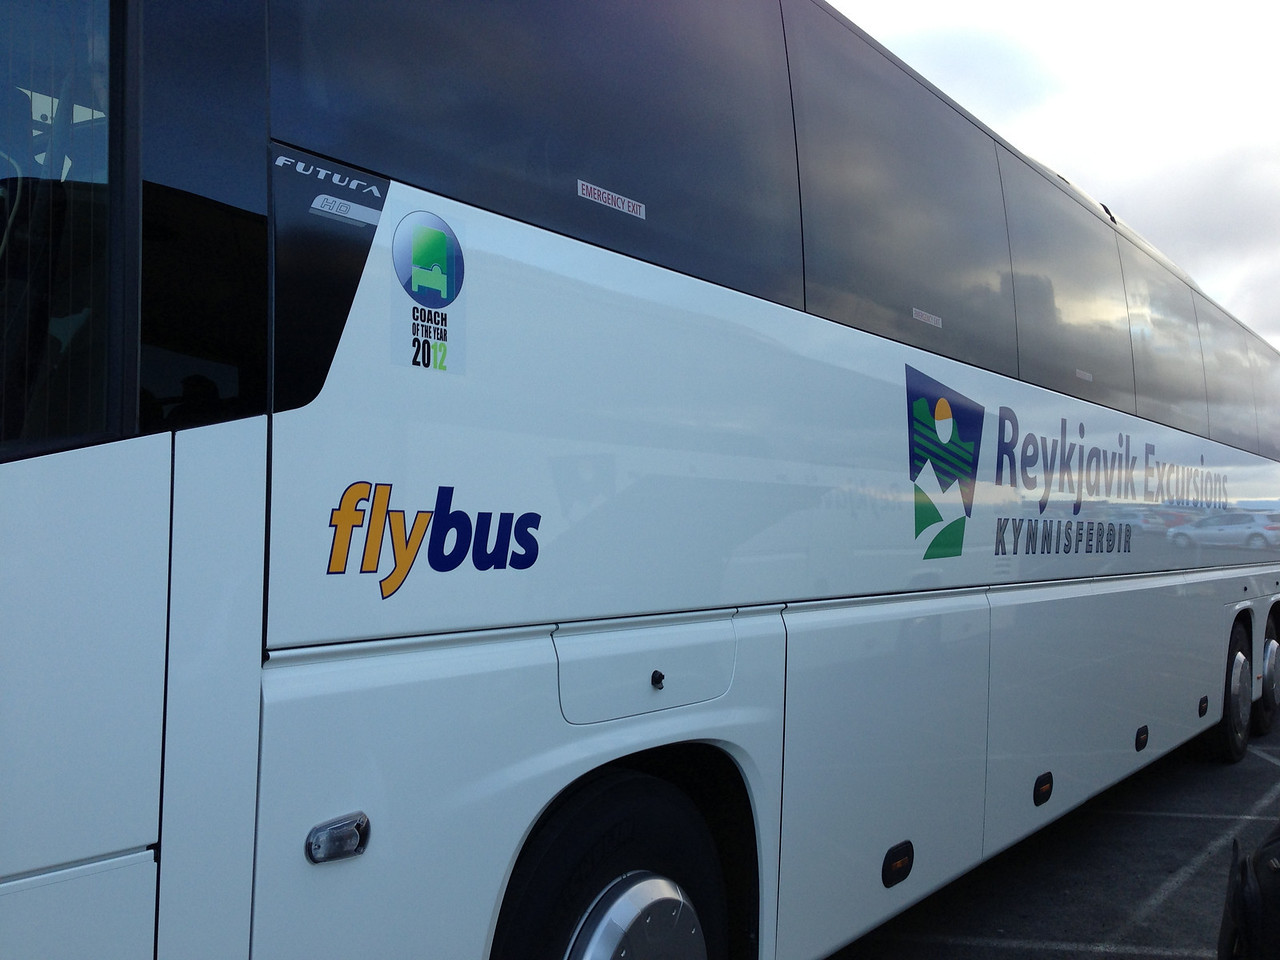 Flybus is the most inexpensive way to travel into Reykjavik.